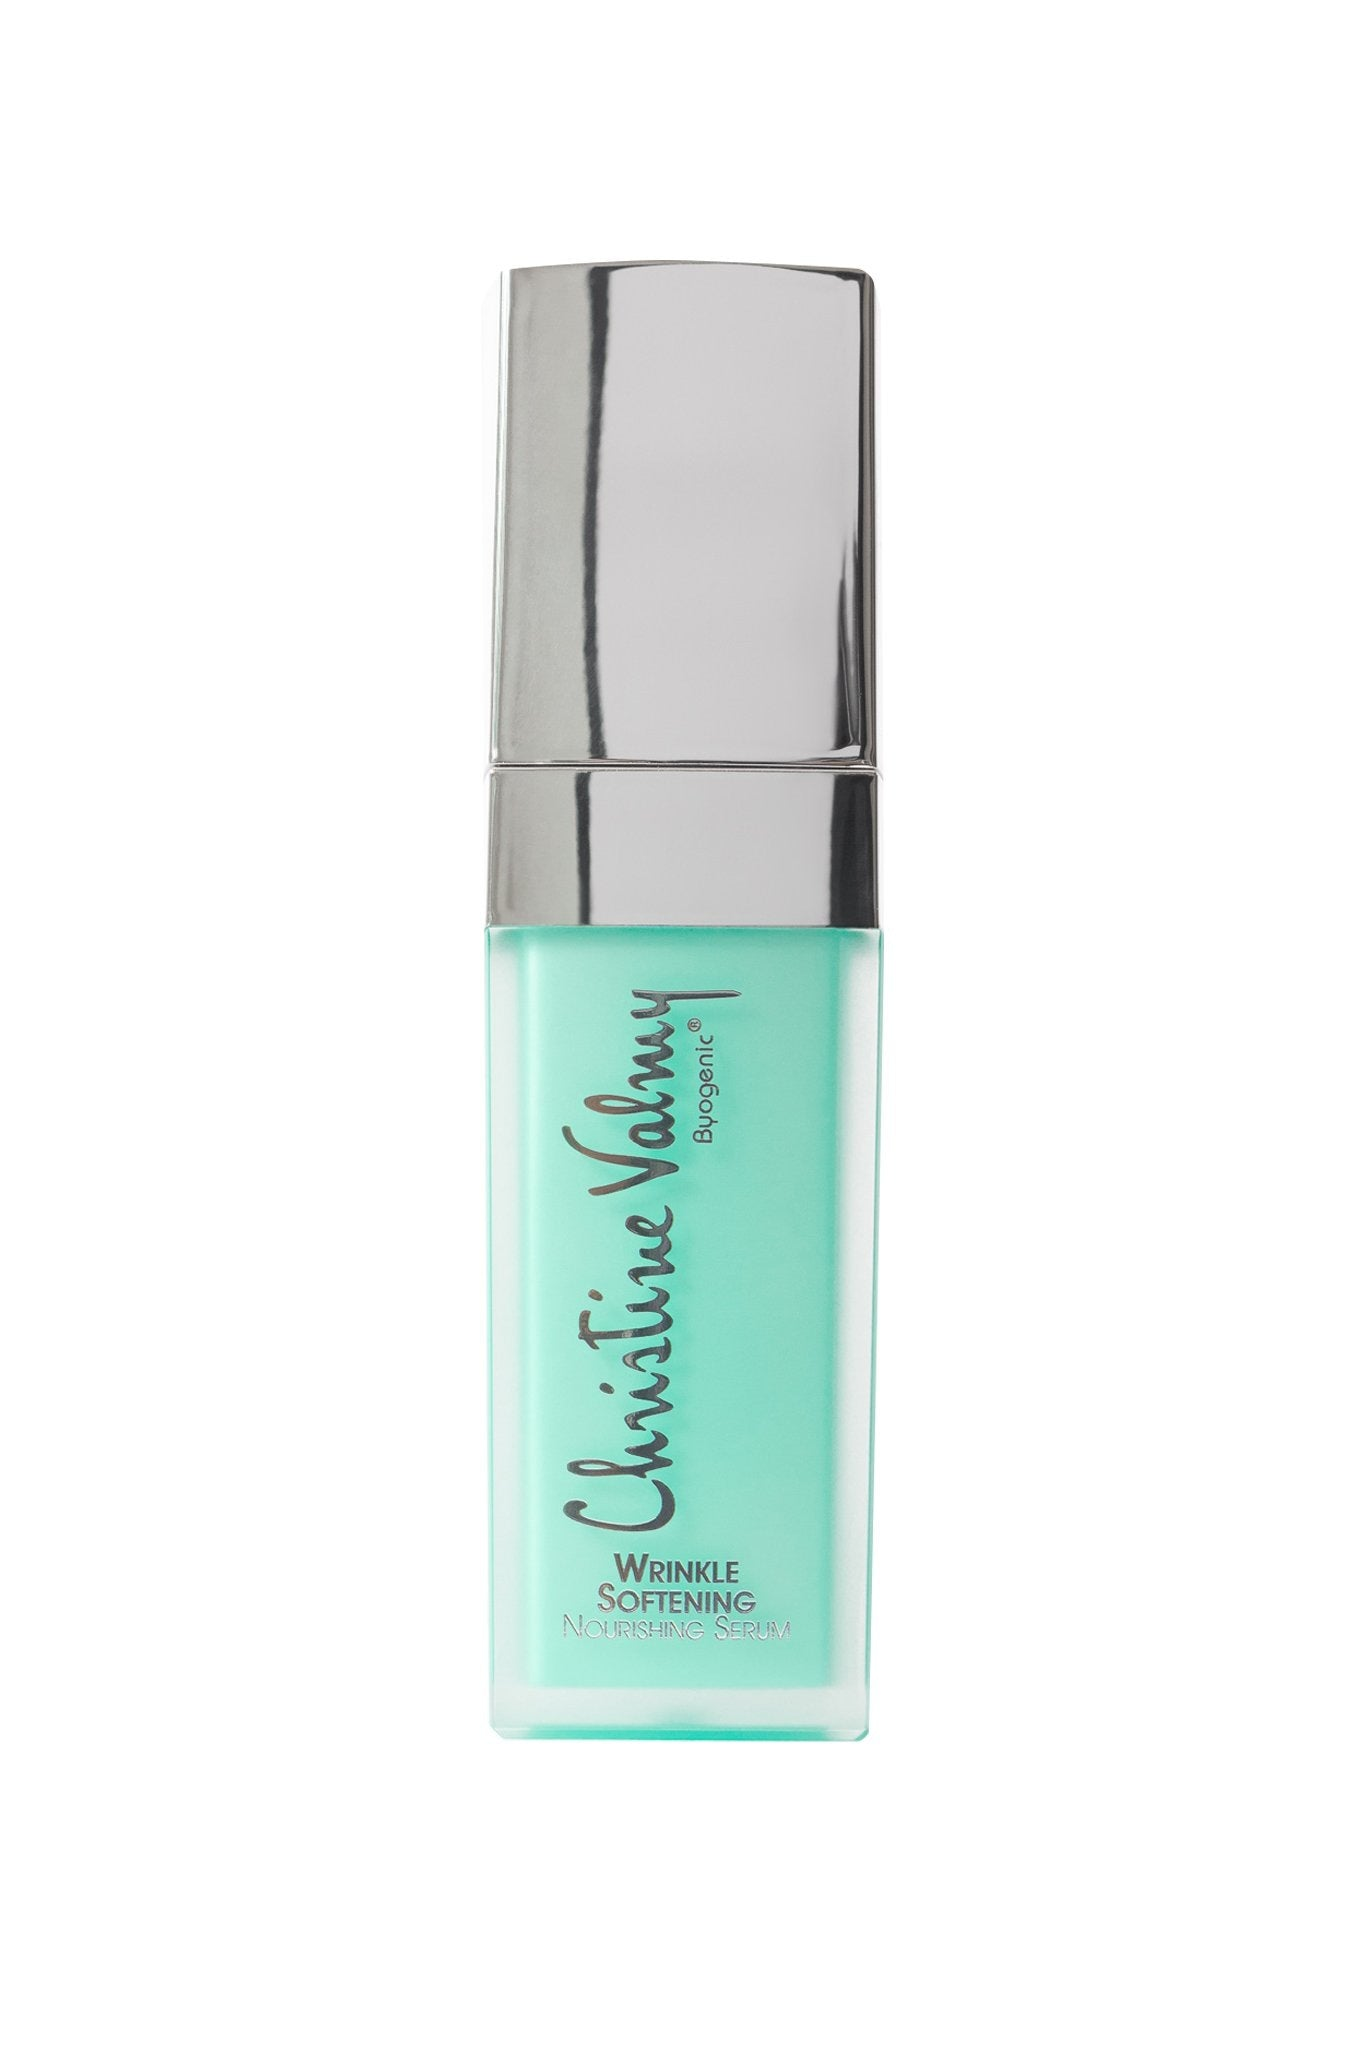 Christine Valmy Wrinkle Softening Serum with anti-aging properties.